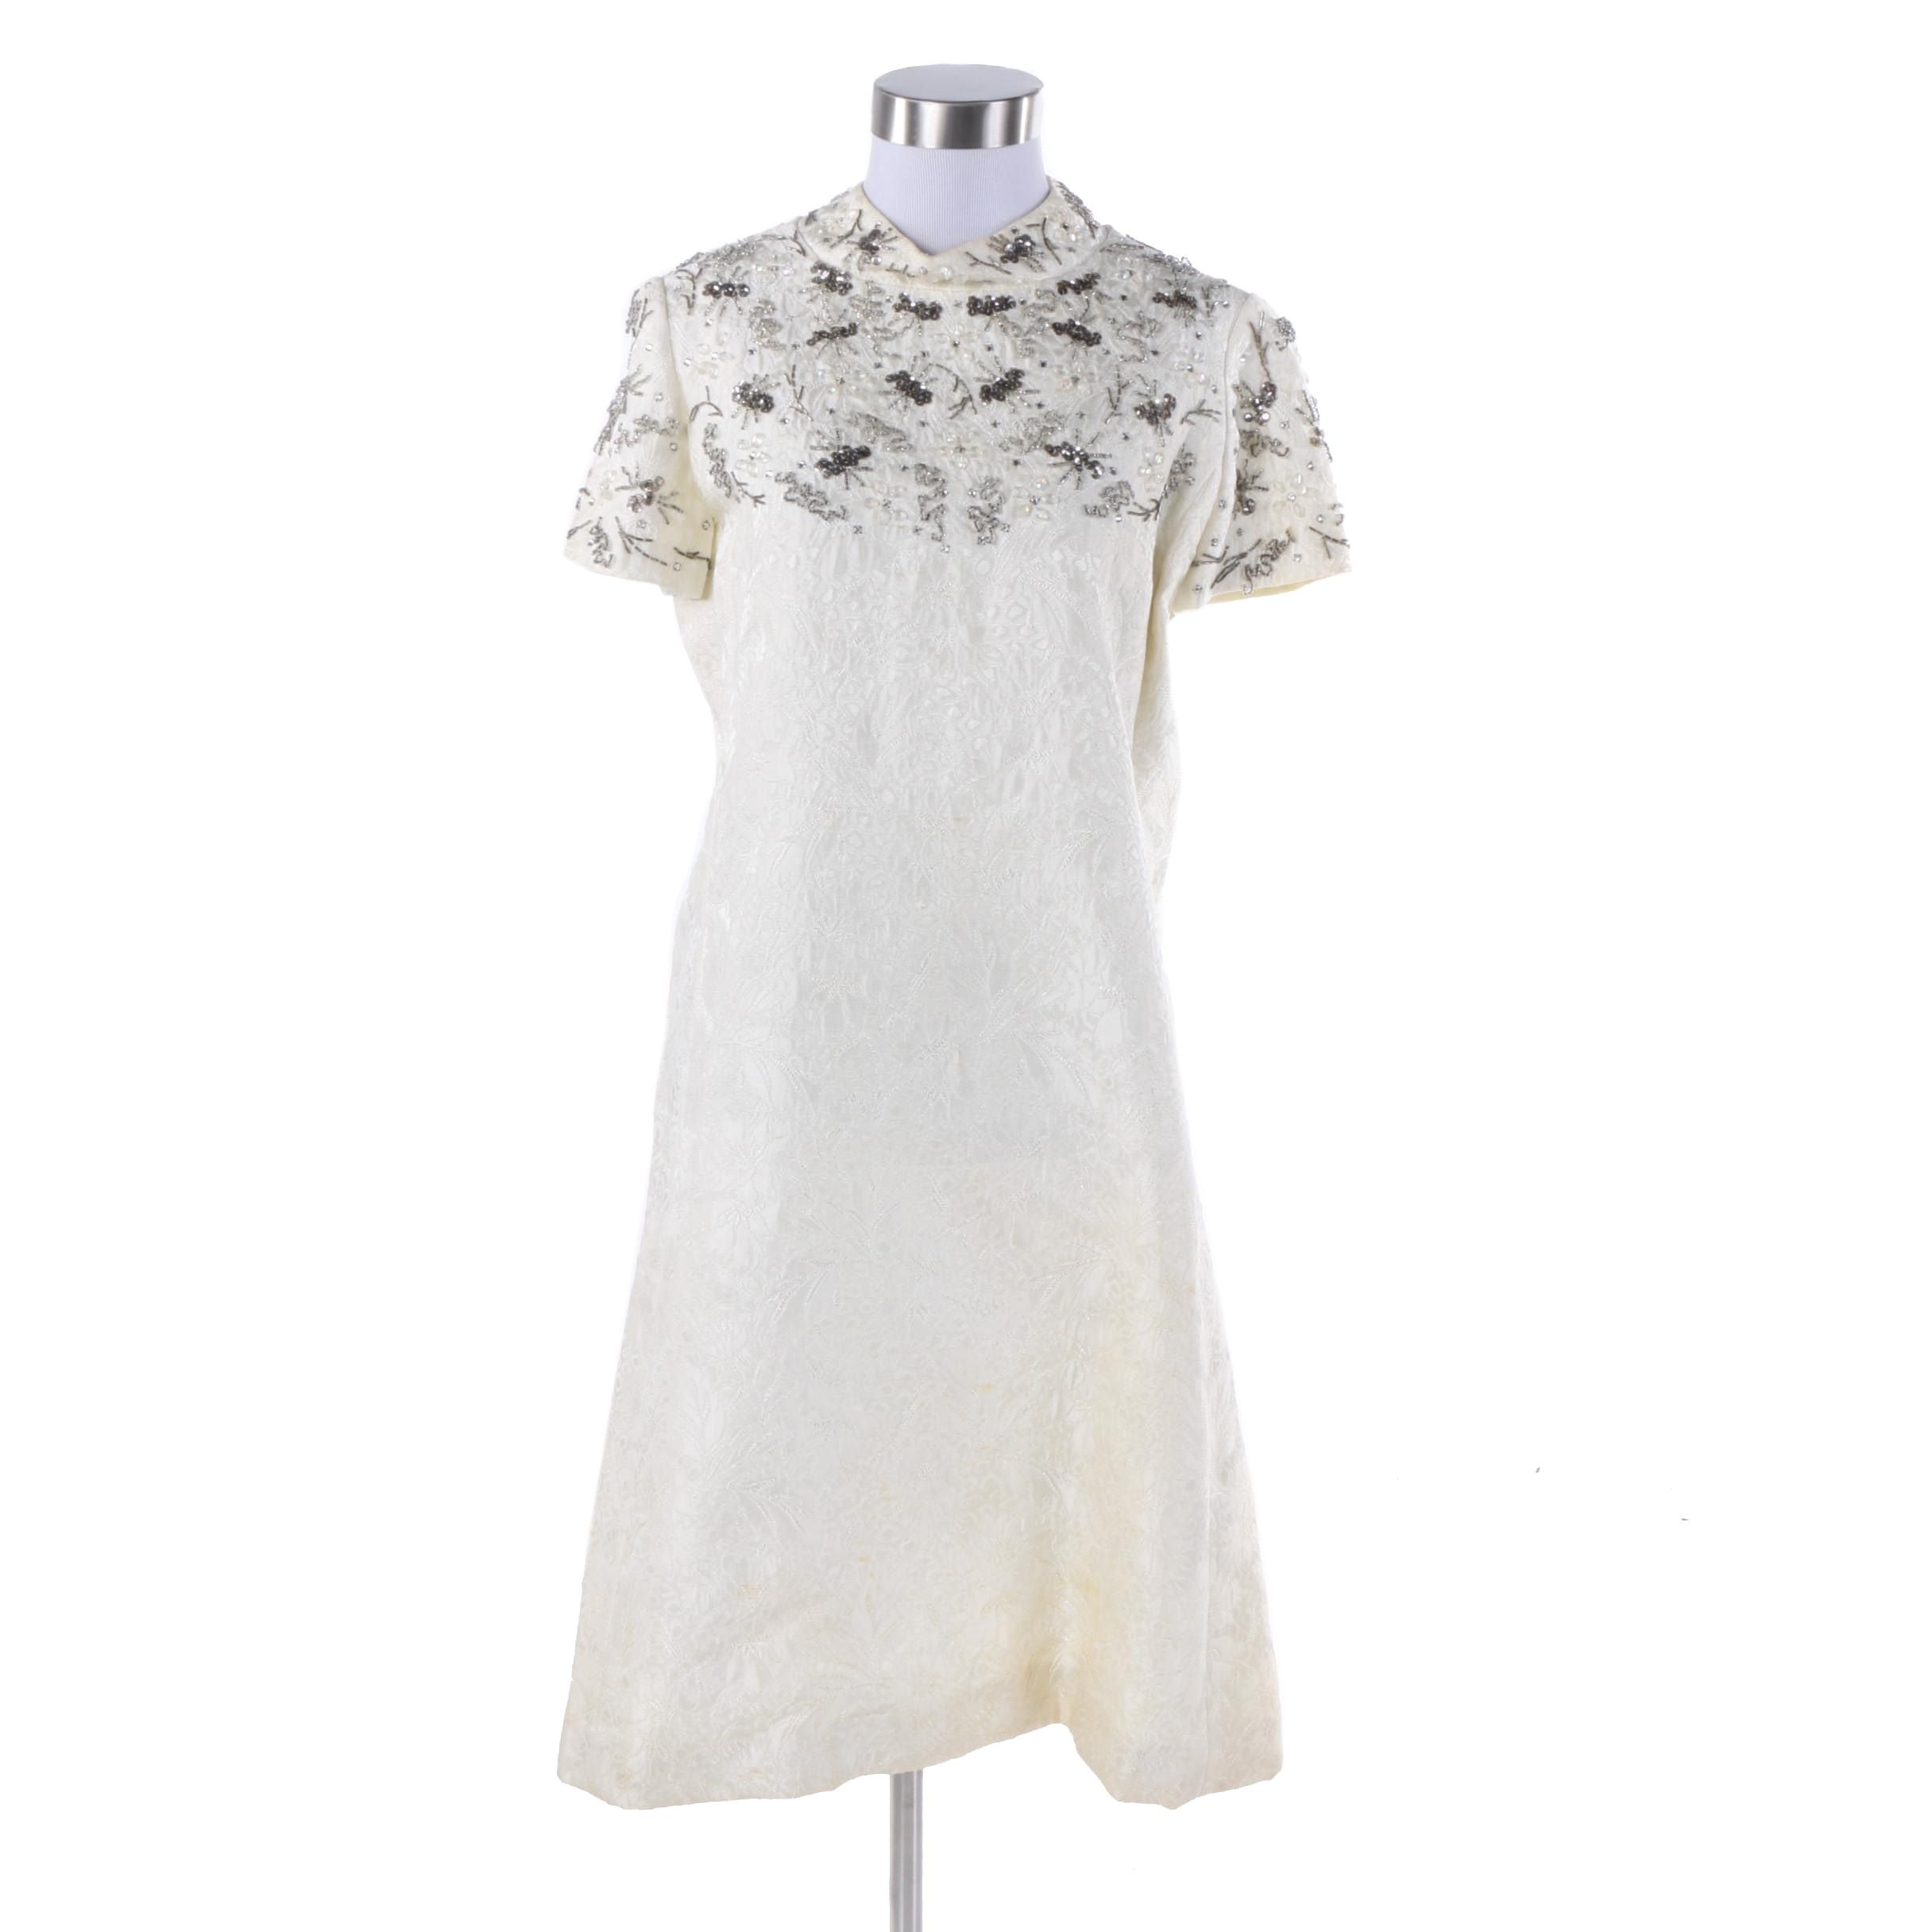 1960s R.S.V.P. Neiman Marcus Beaded Ivory Brocade Shift Dress